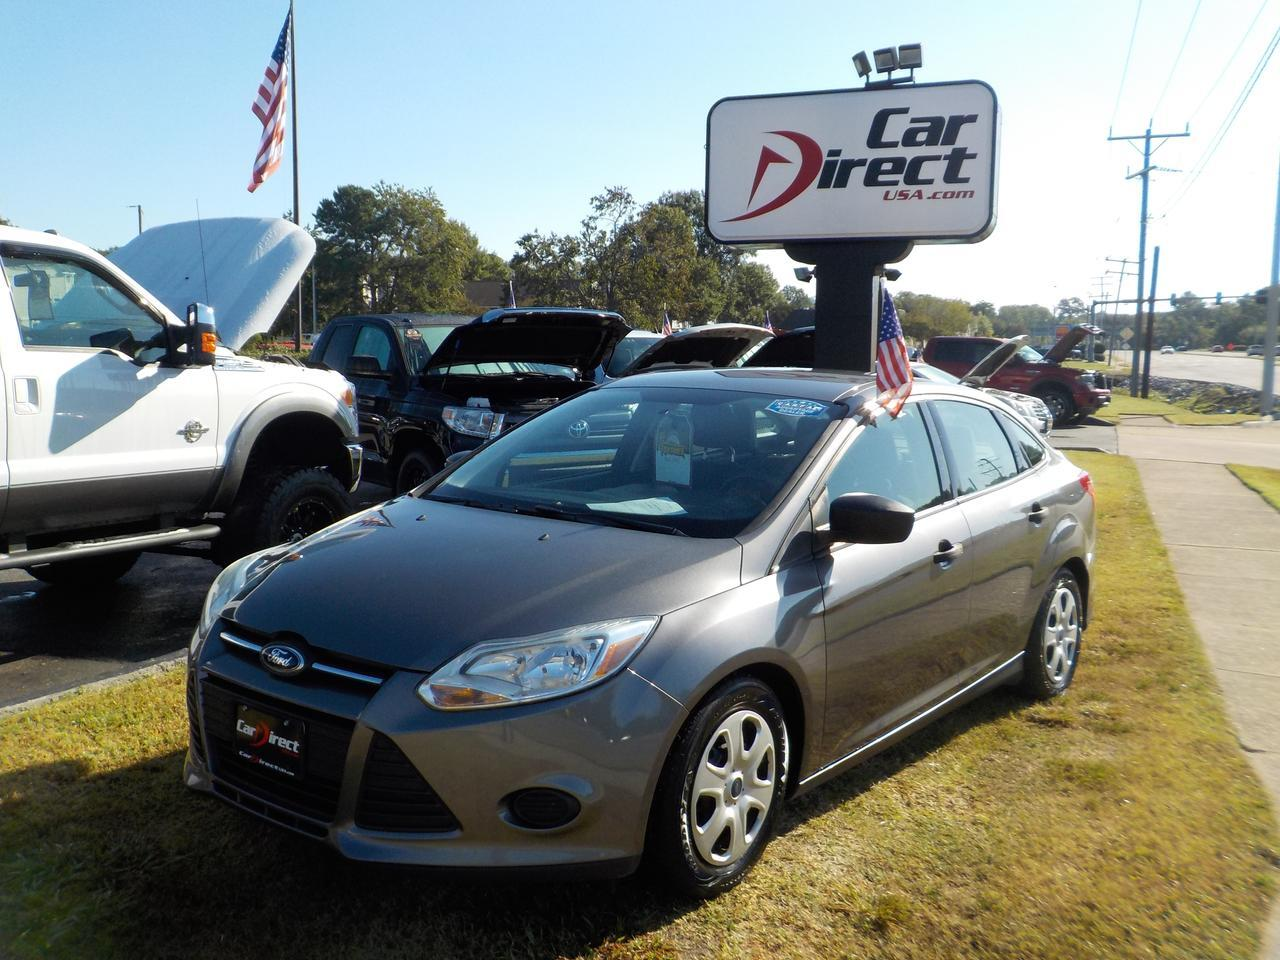 2014 FORD FOCUS S, WARRANTY, CRUISE CONTROL, CD PLAYER, AUX PORT!